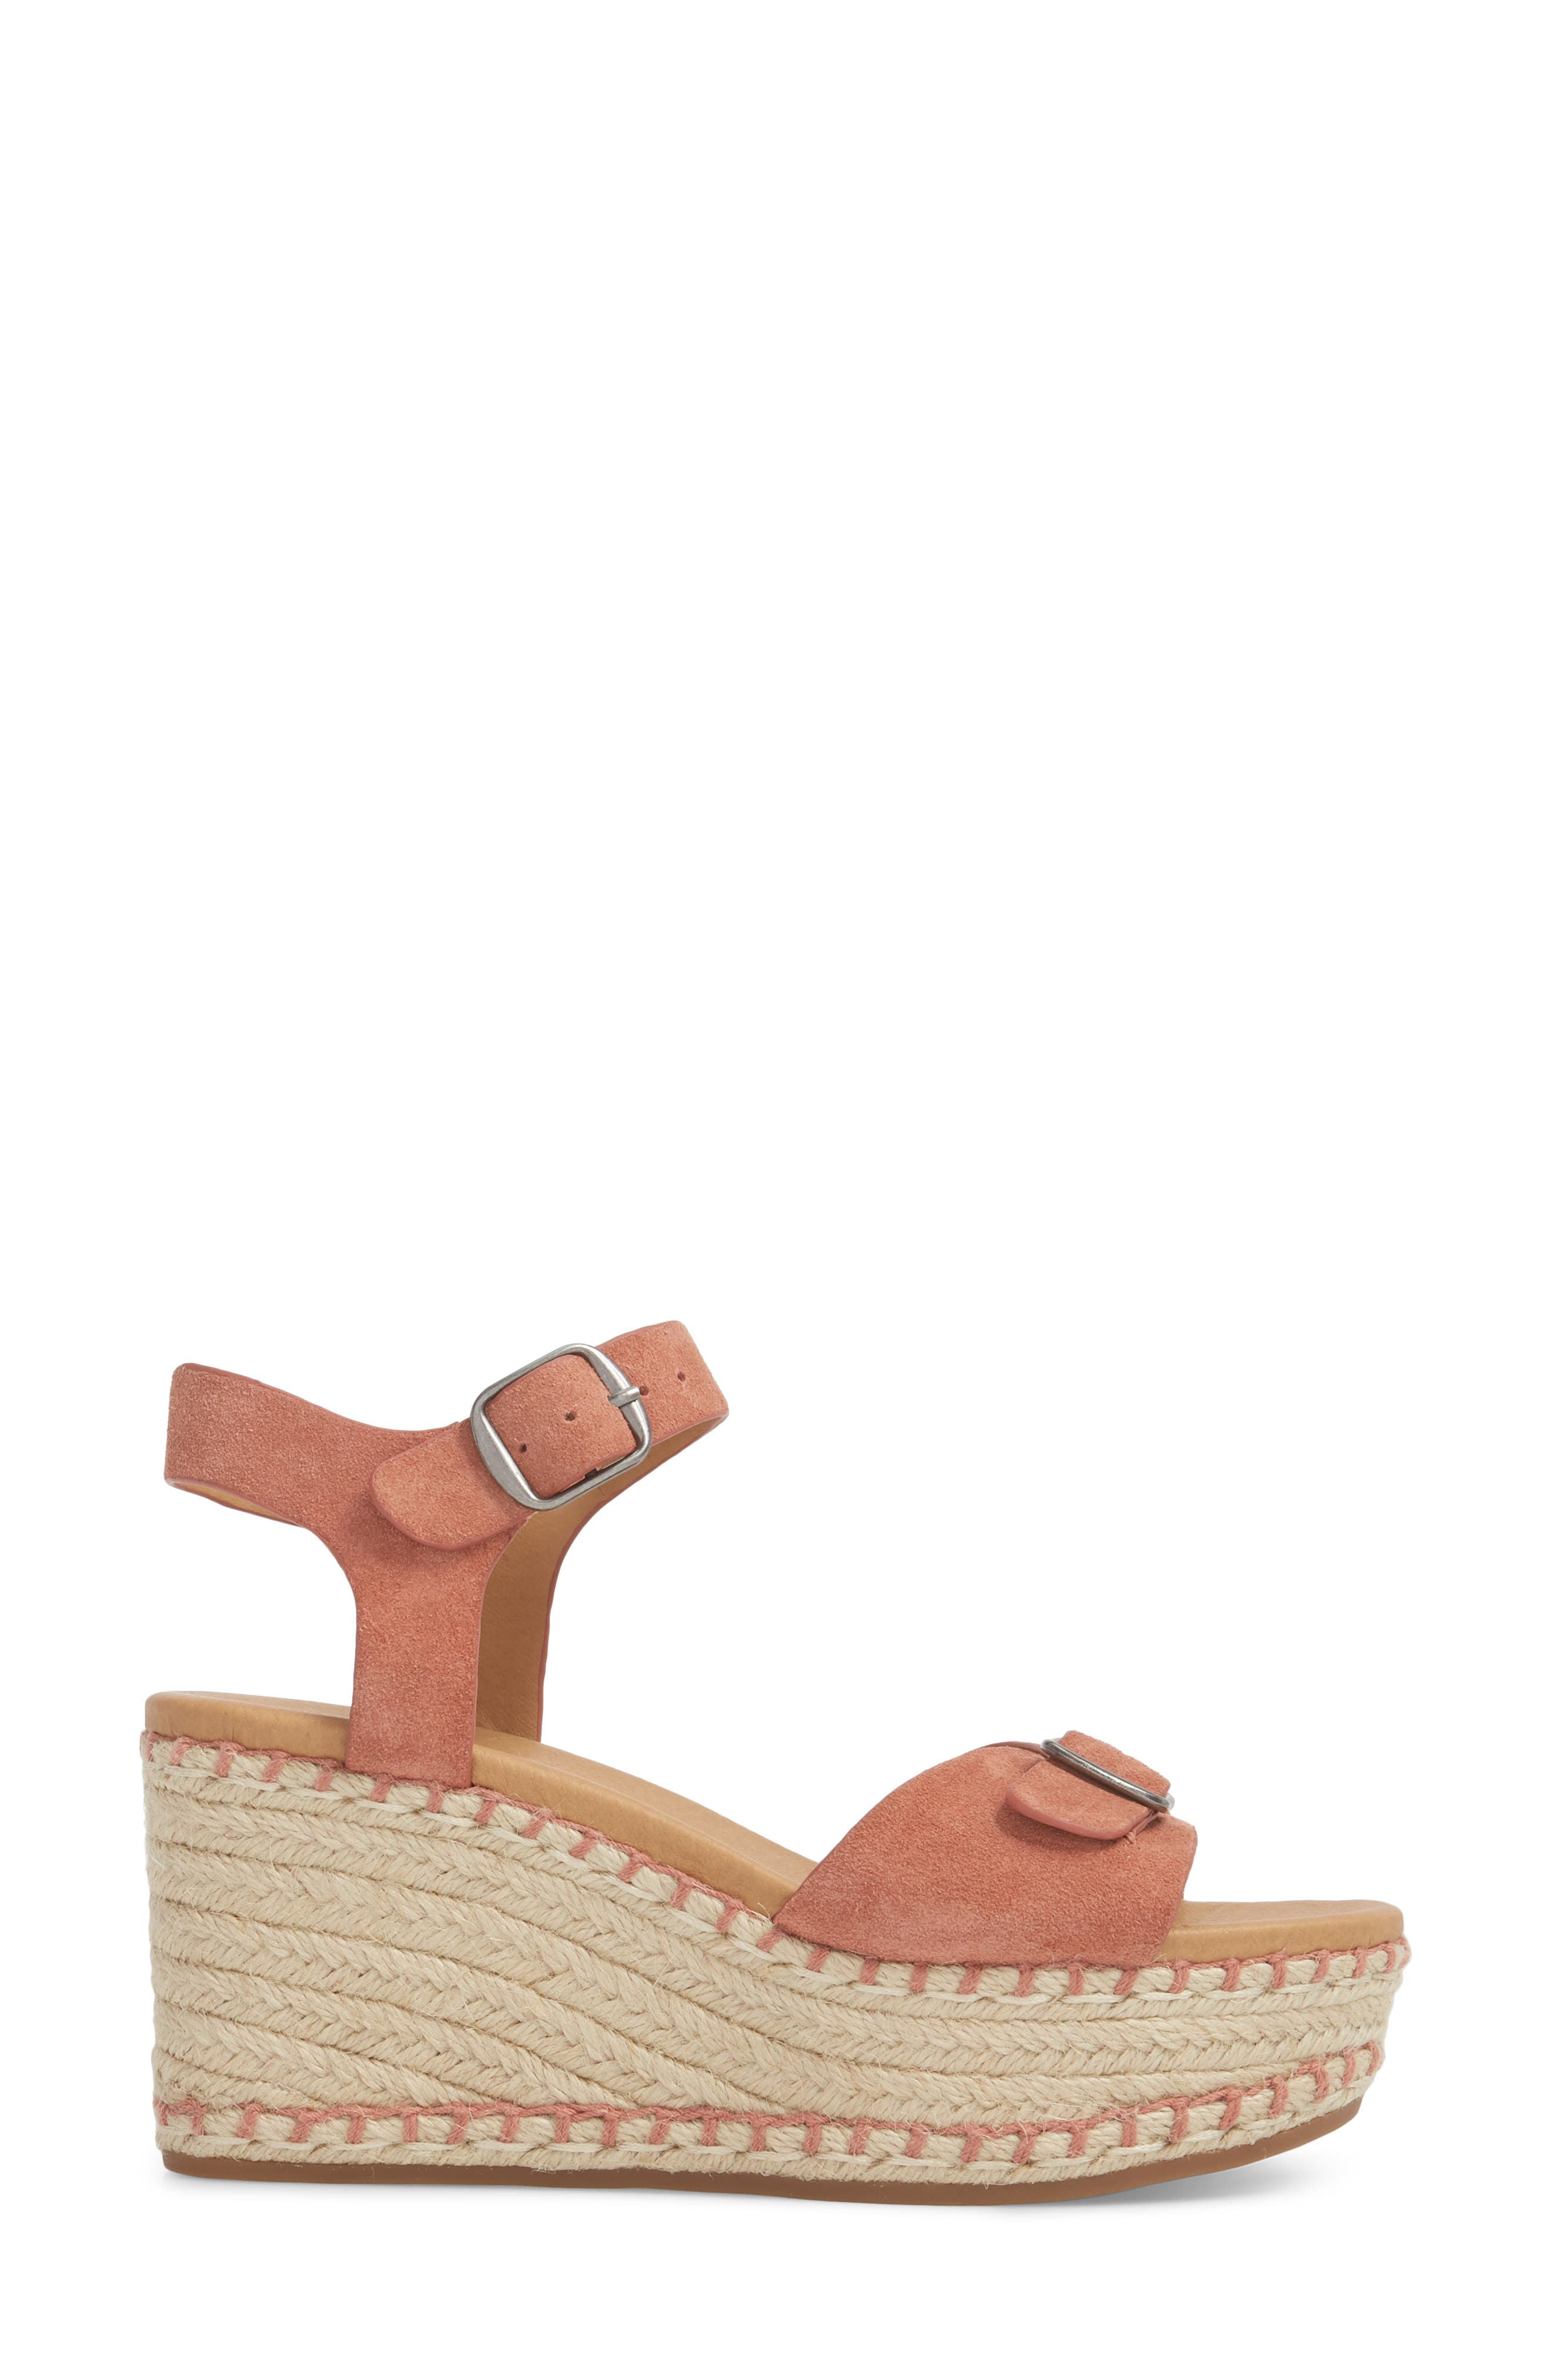 Naveah III Espadrille Wedge Sandal,                             Alternate thumbnail 3, color,                             Canyon Rose Suede